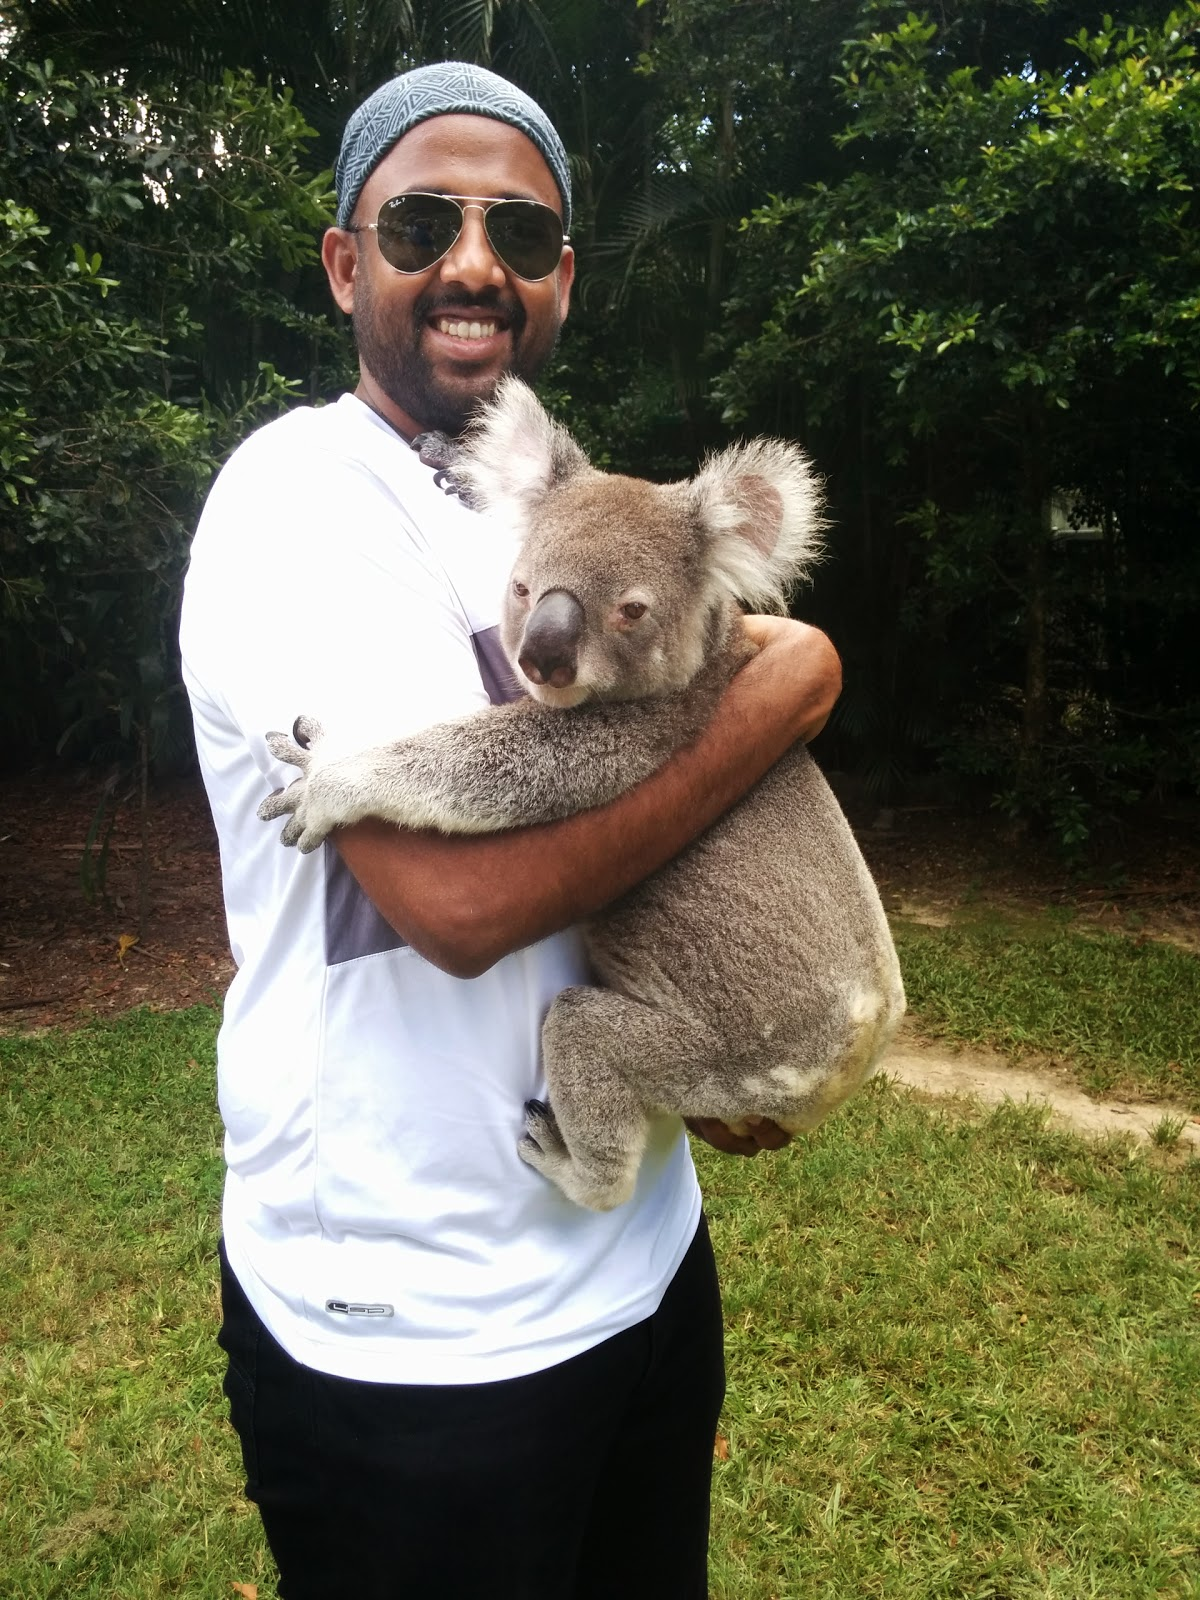 Holding a Koala at Queensland